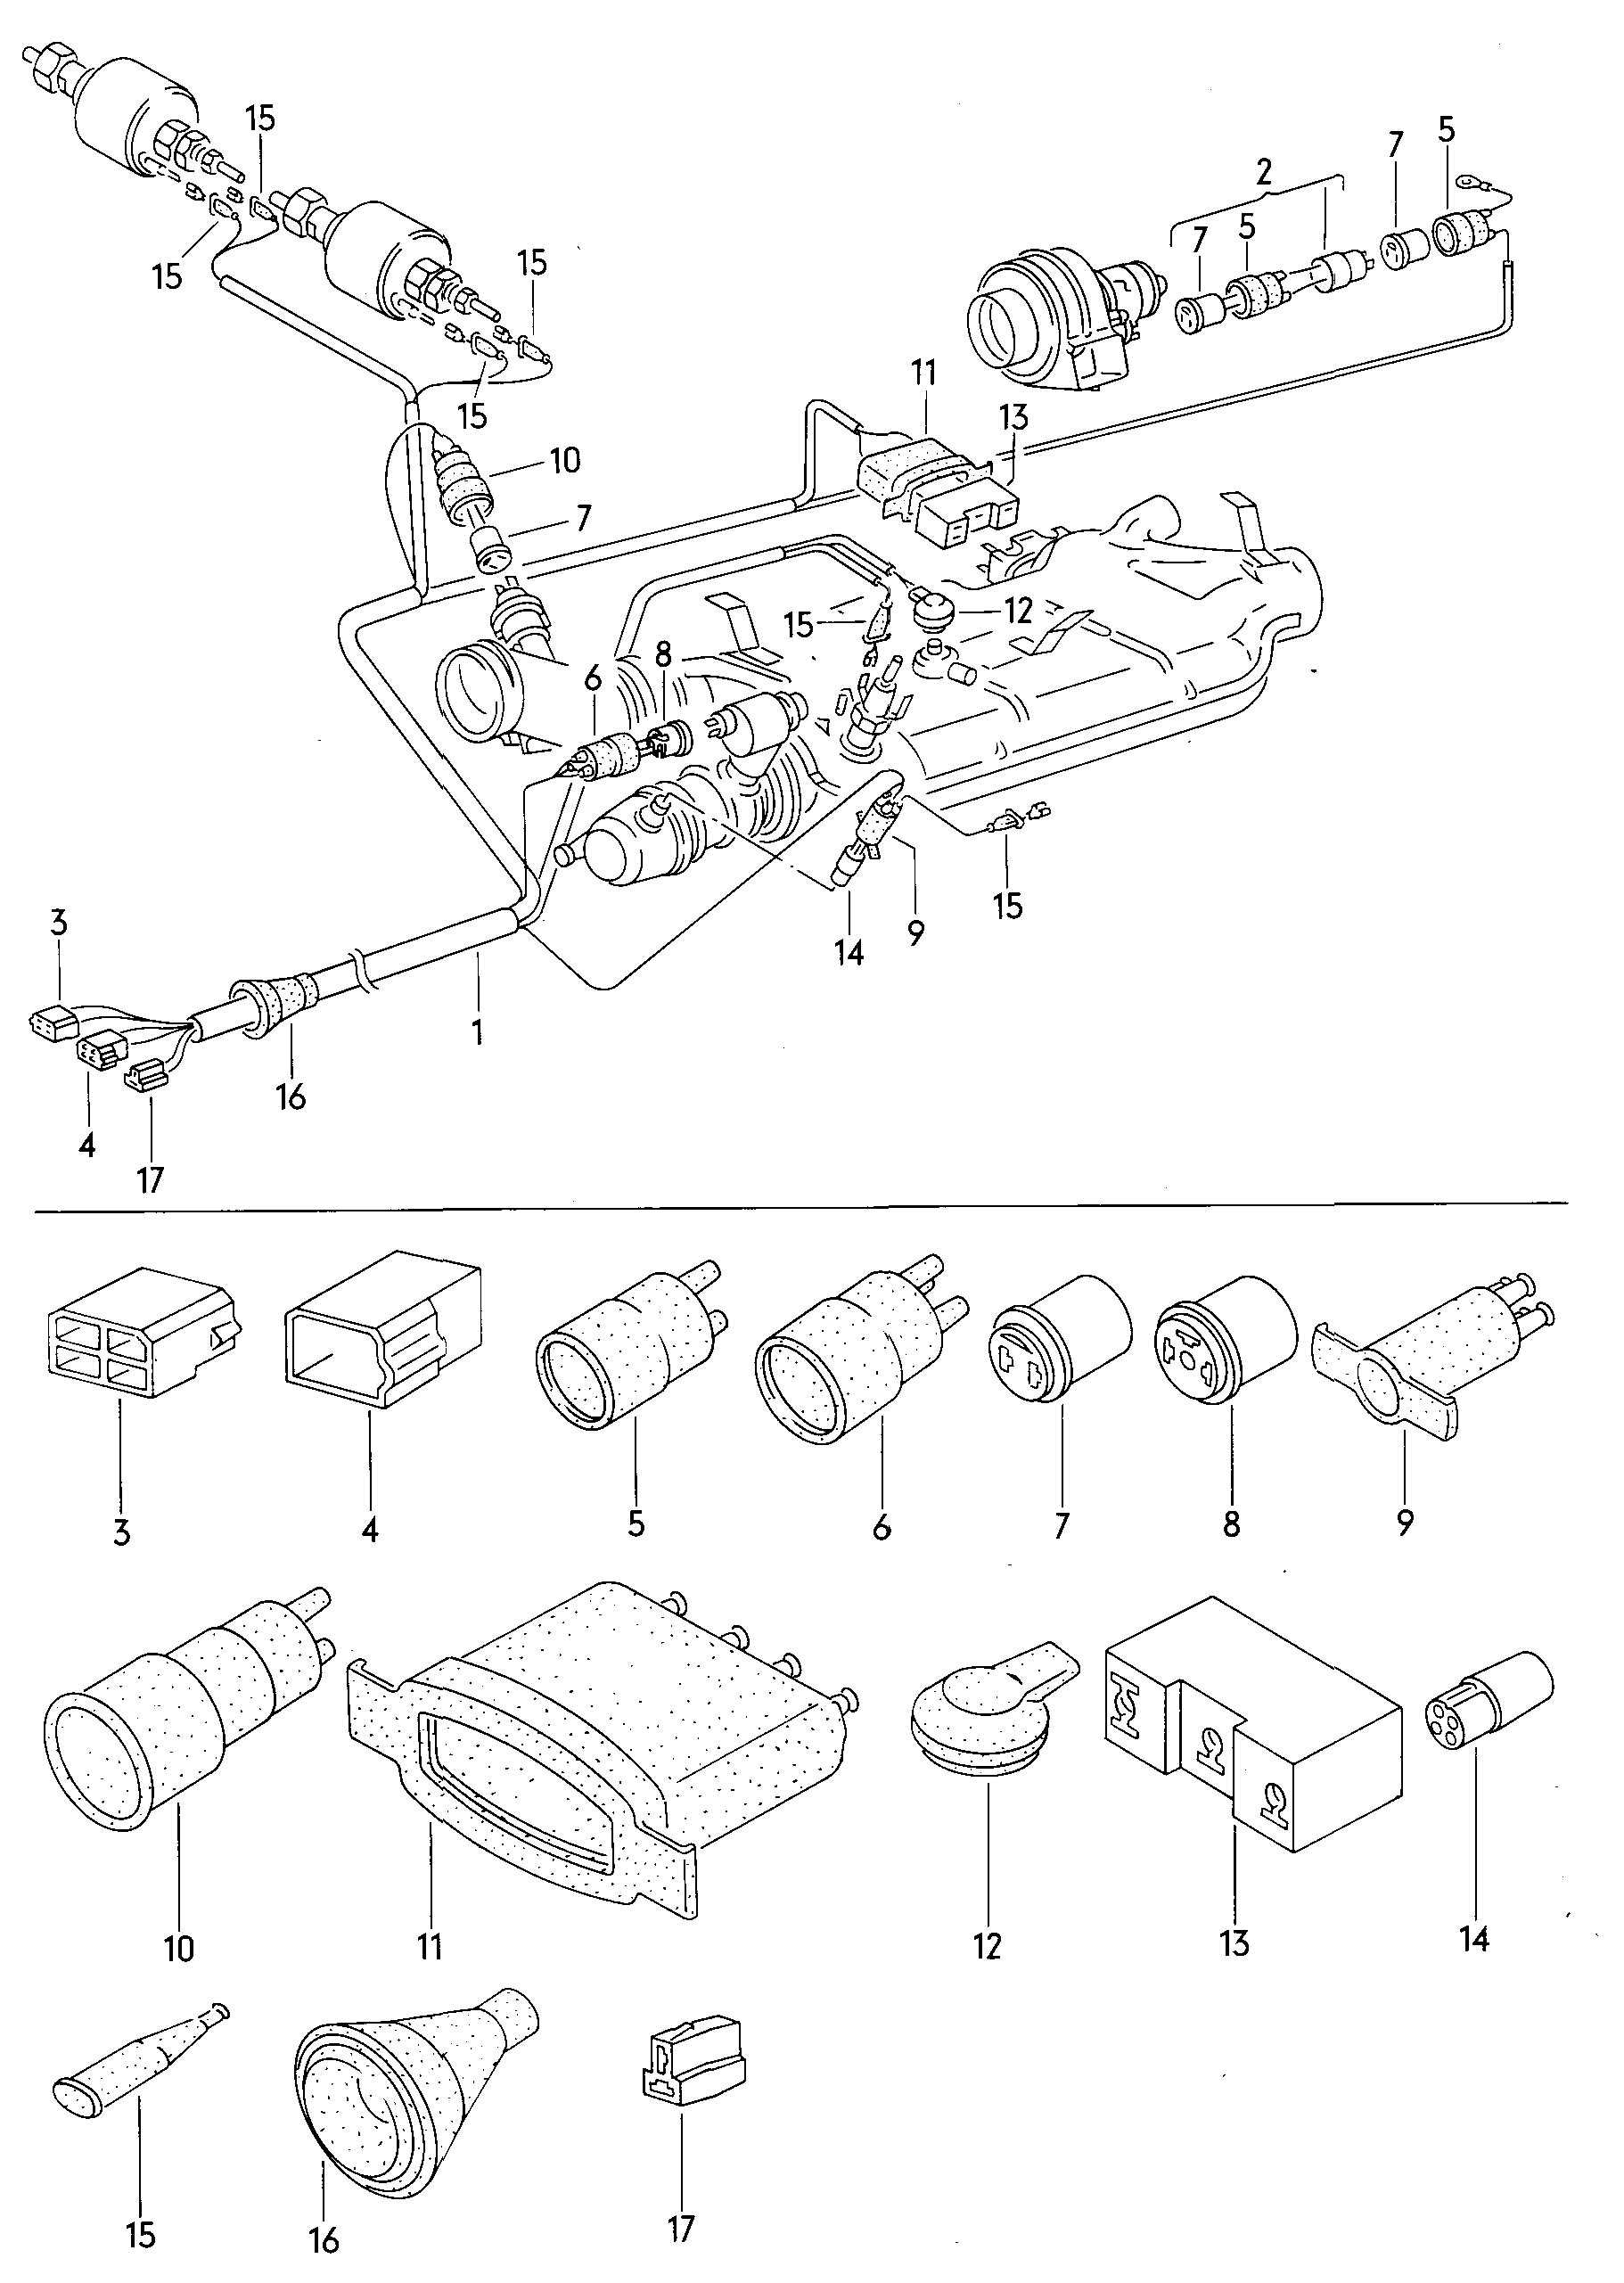 86 Vw Golf Wiring Diagram additionally Volkswagen Suran 1 6 2006 Specs And Images likewise 1985 Vw Cabriolet Wiring Diagram moreover Vw Cabriolet Vacuum Diagram furthermore P 0900c152802667eb. on 1990 volkswagen rabbit